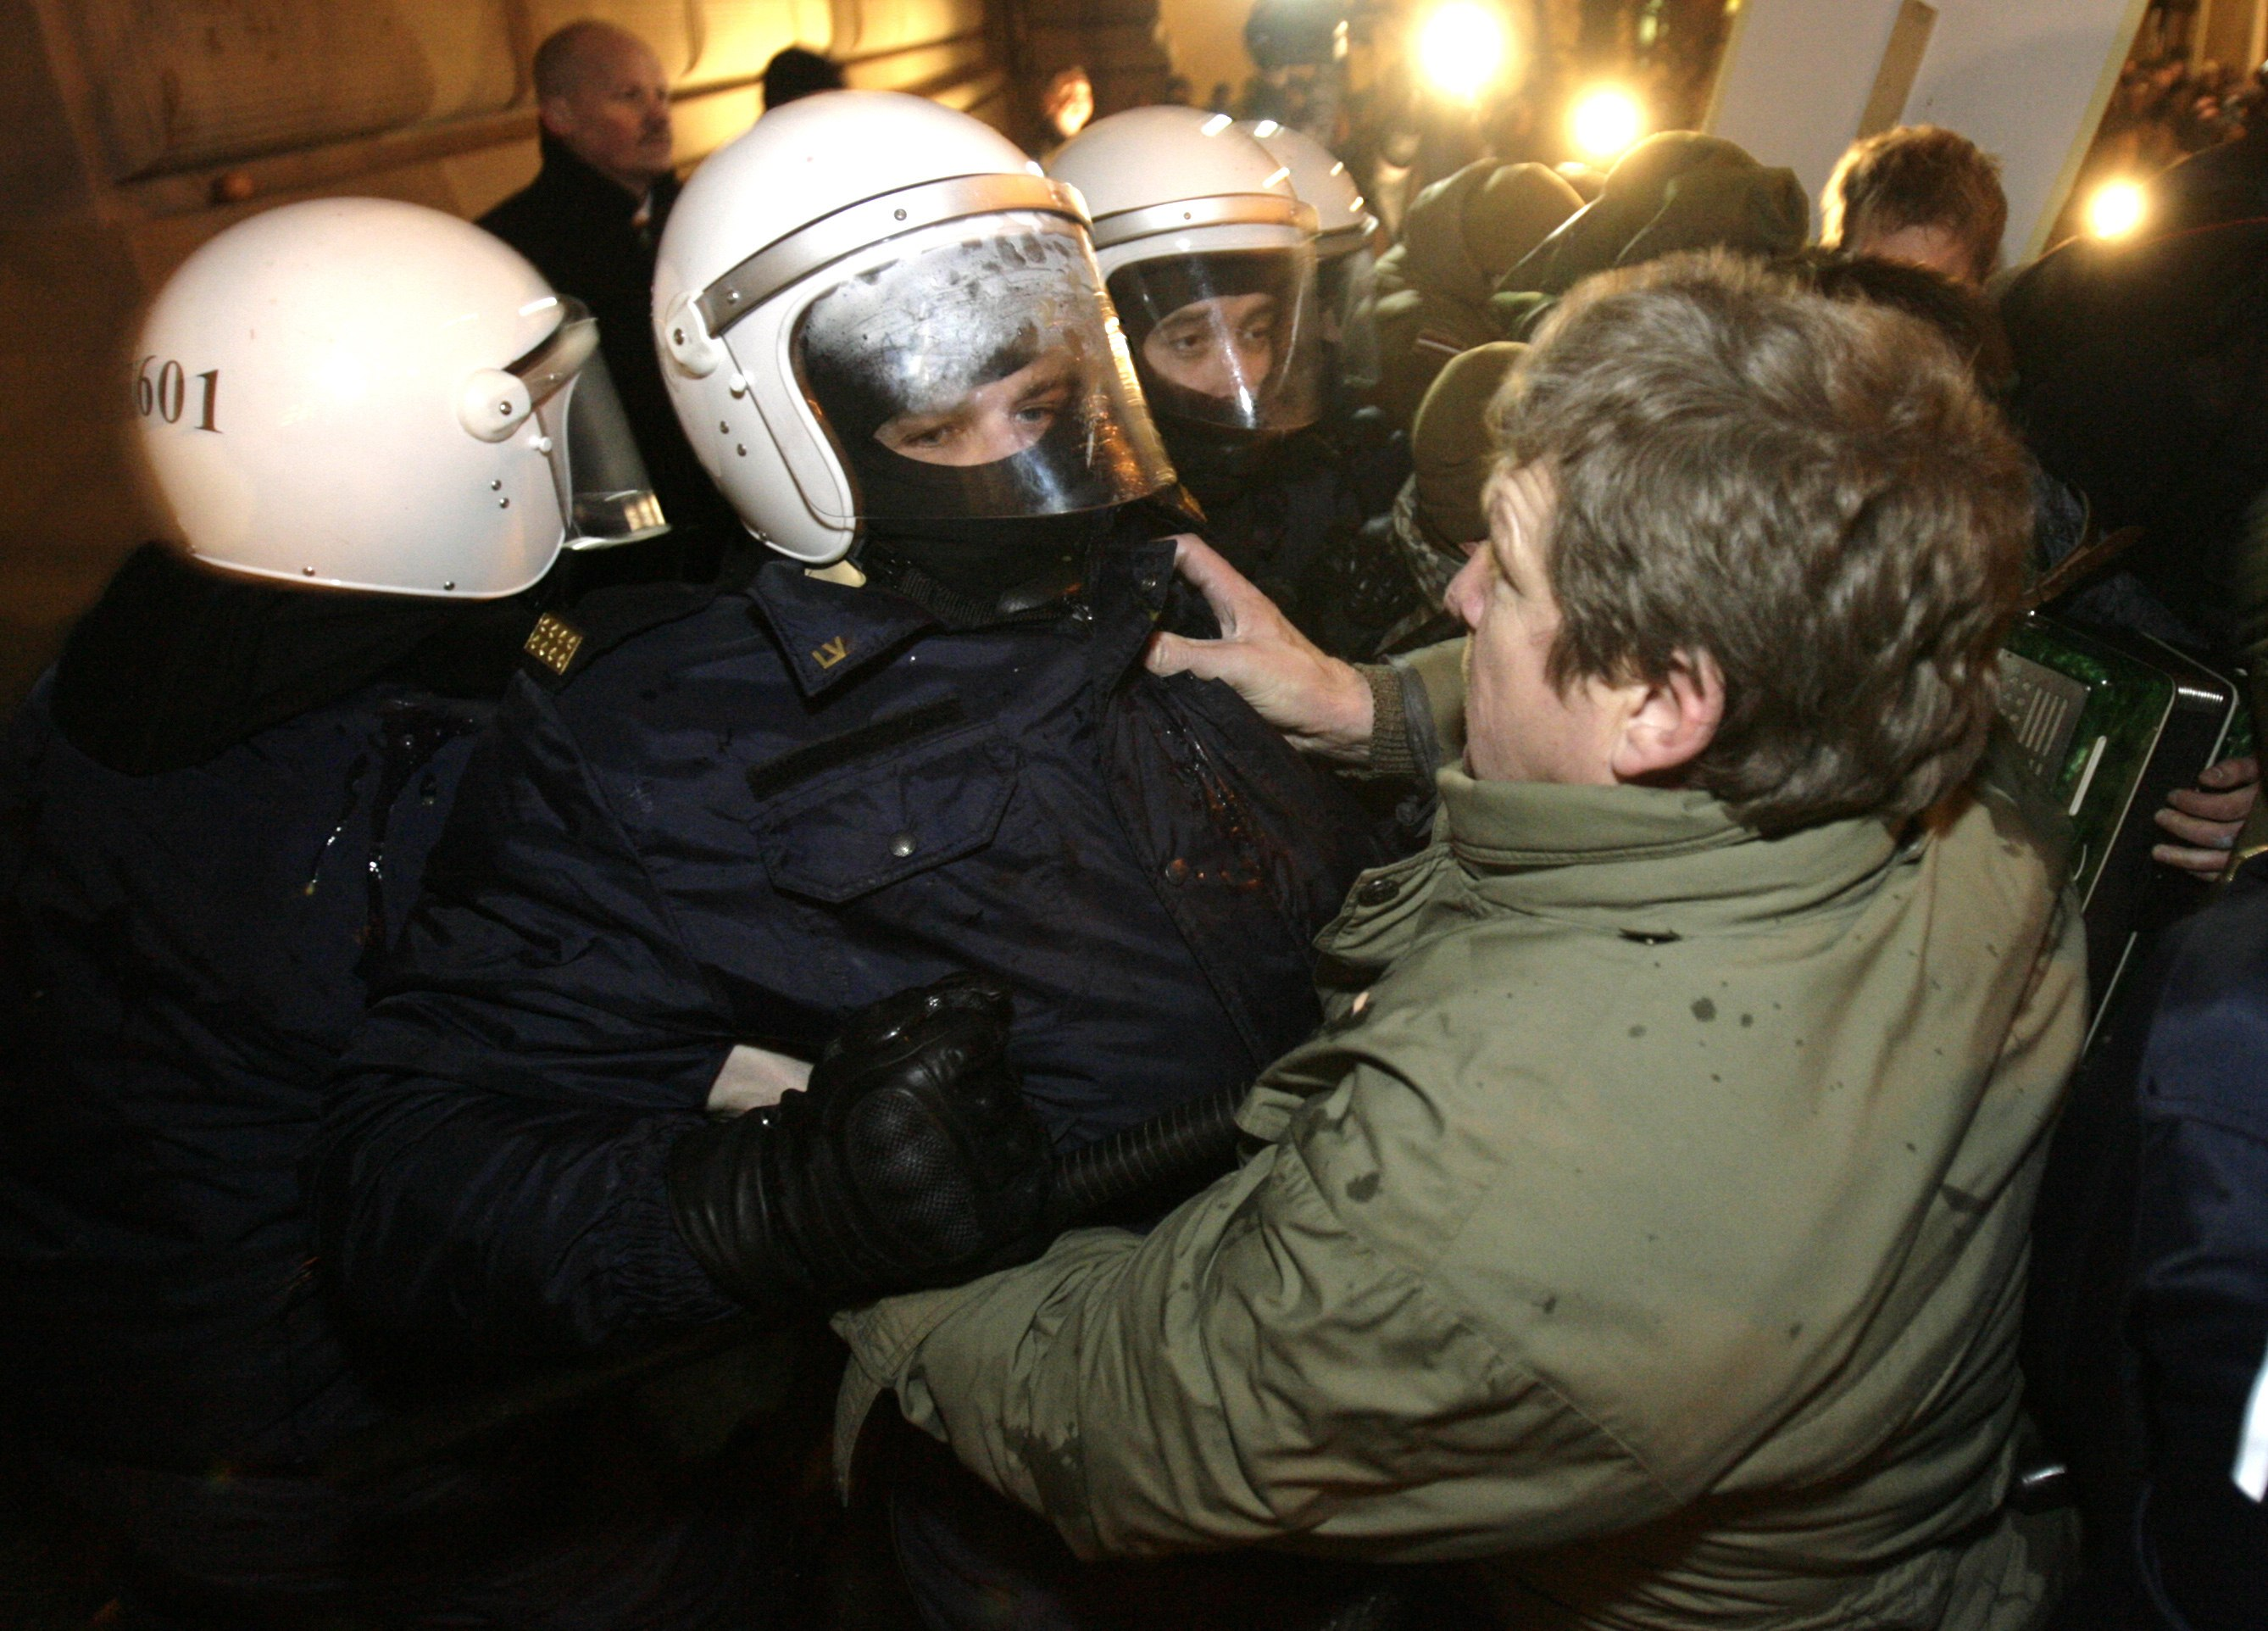 Demonstrators clash with riot police in front of Latvia's parliament building in Riga, Latvia on Tuesday.